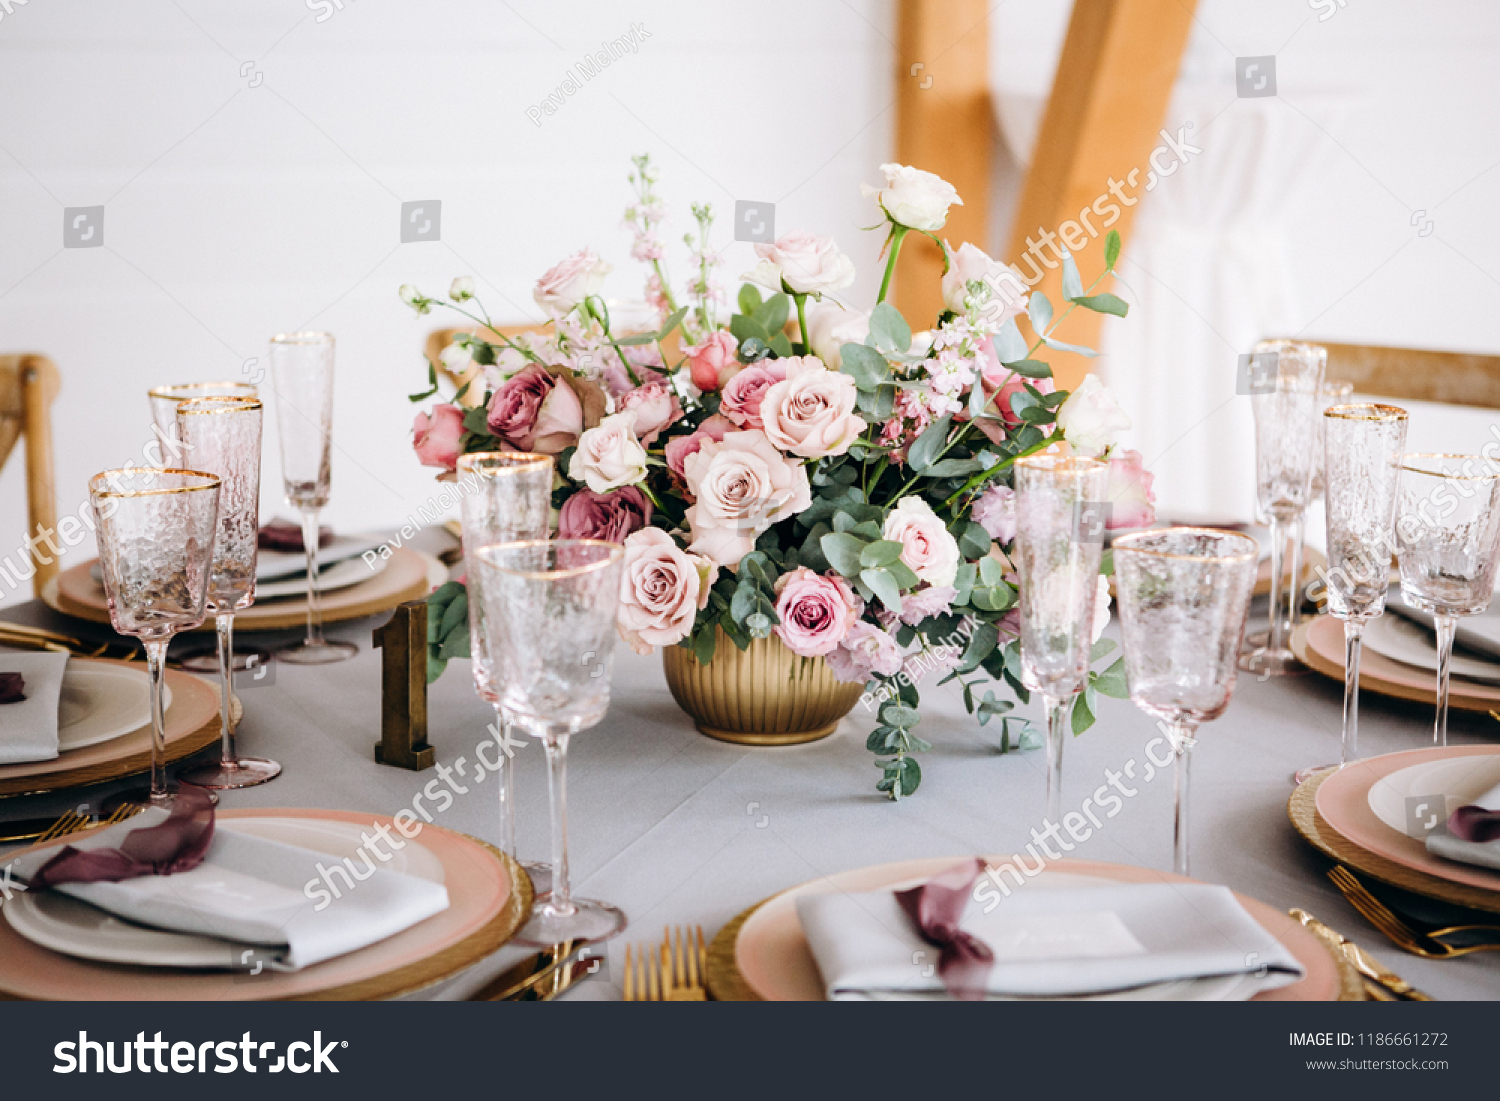 Amazing wedding table decoration with flowers on wooden tables #1186661272